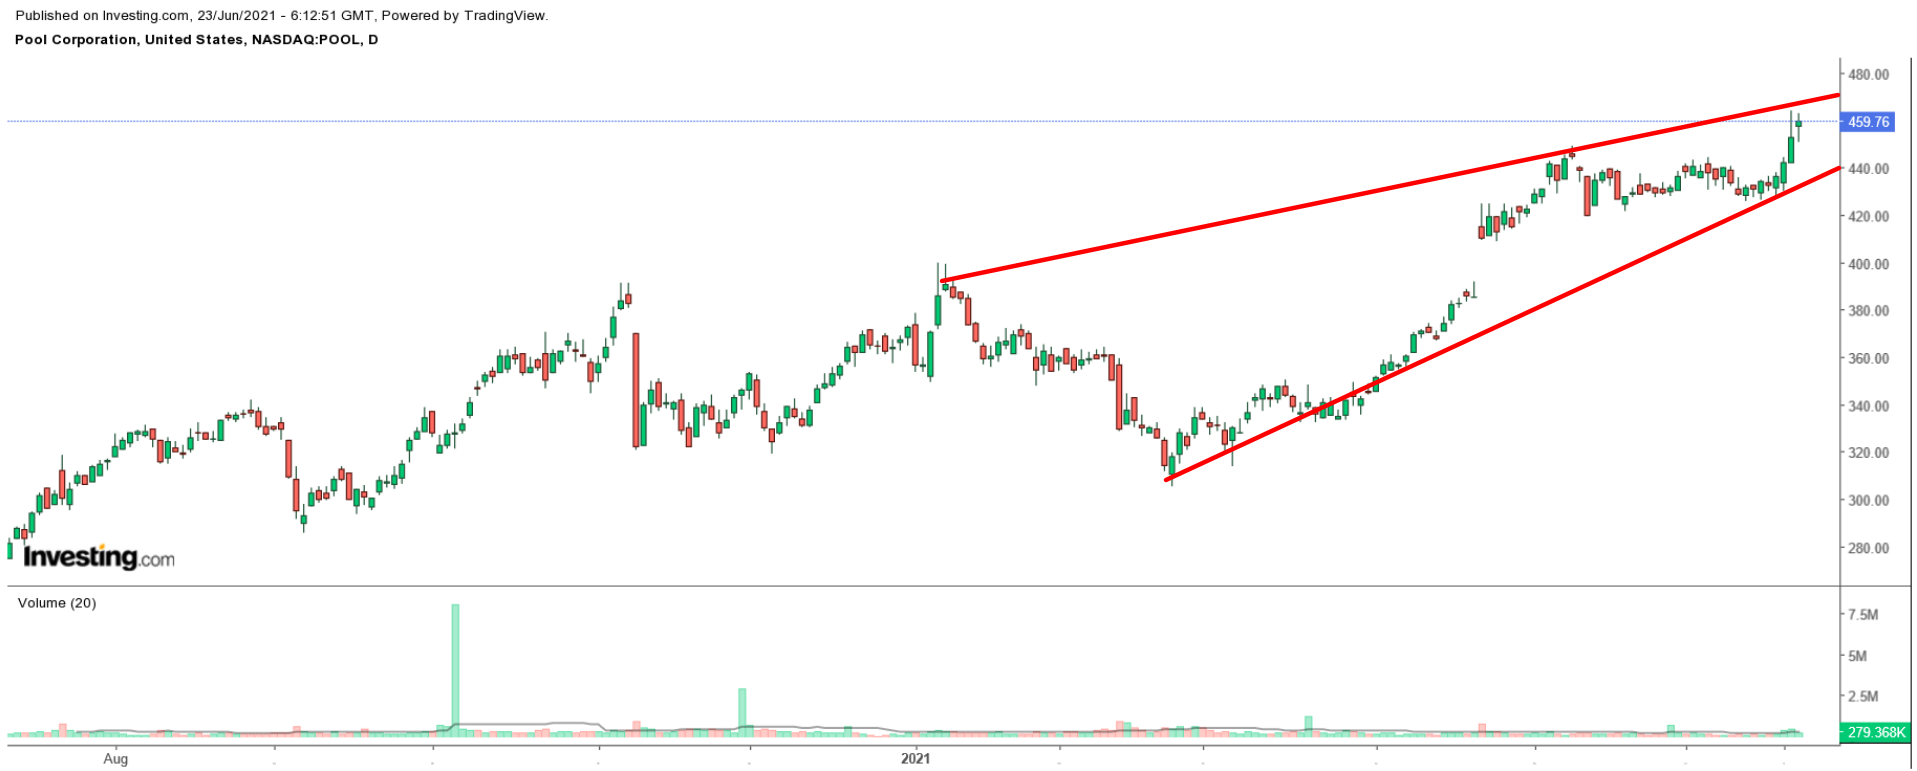 POOL Daily Chart